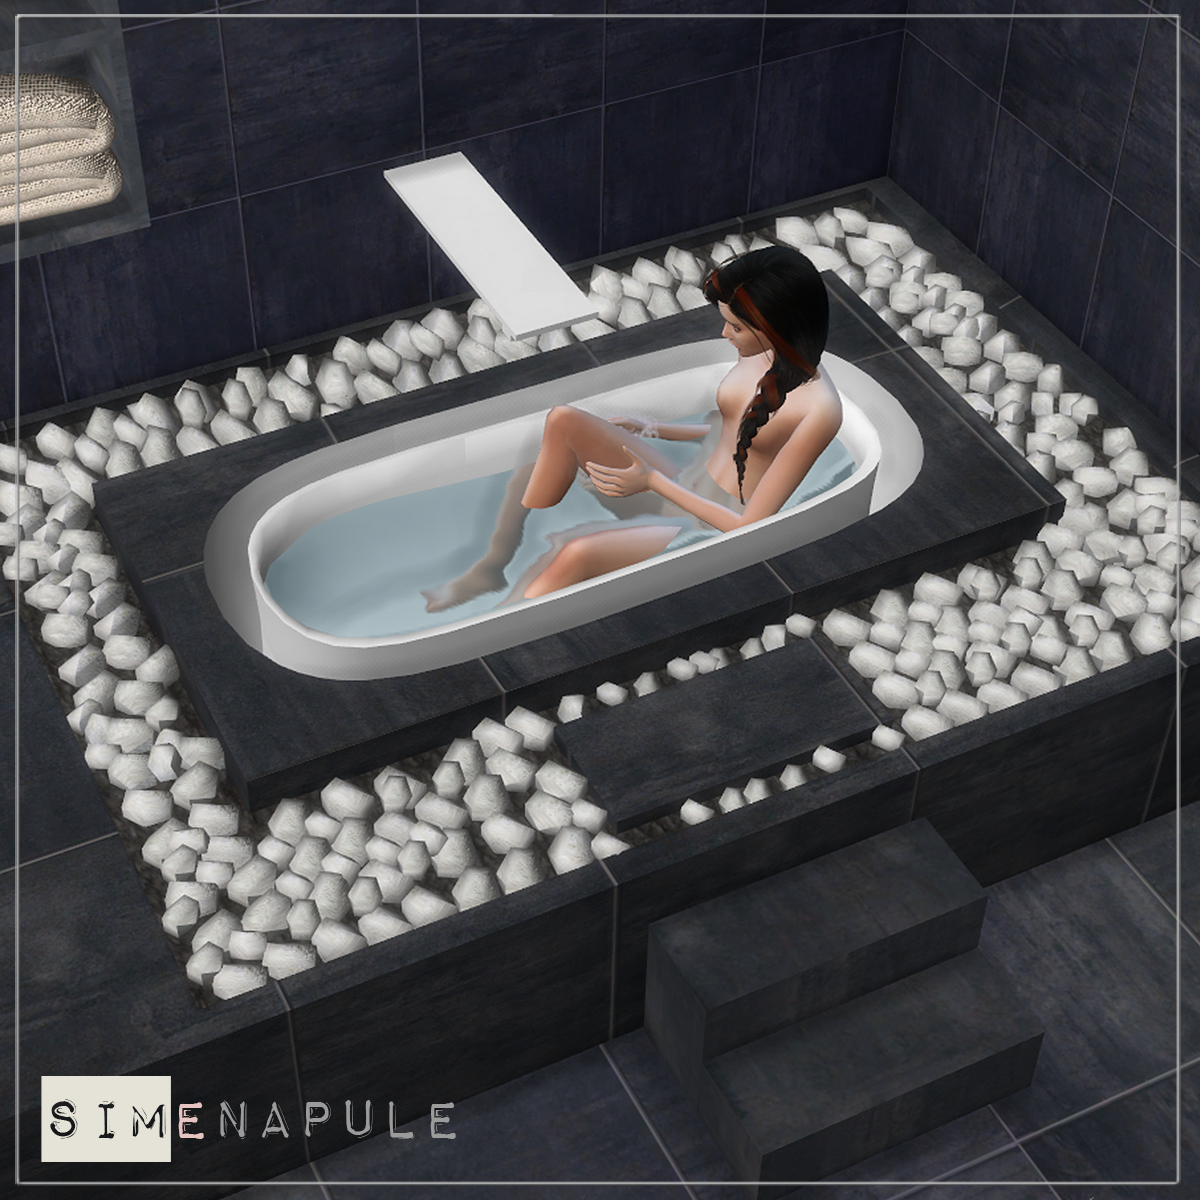 Simenapule It Sims 4 Objects Bedroom Set Free Downloads